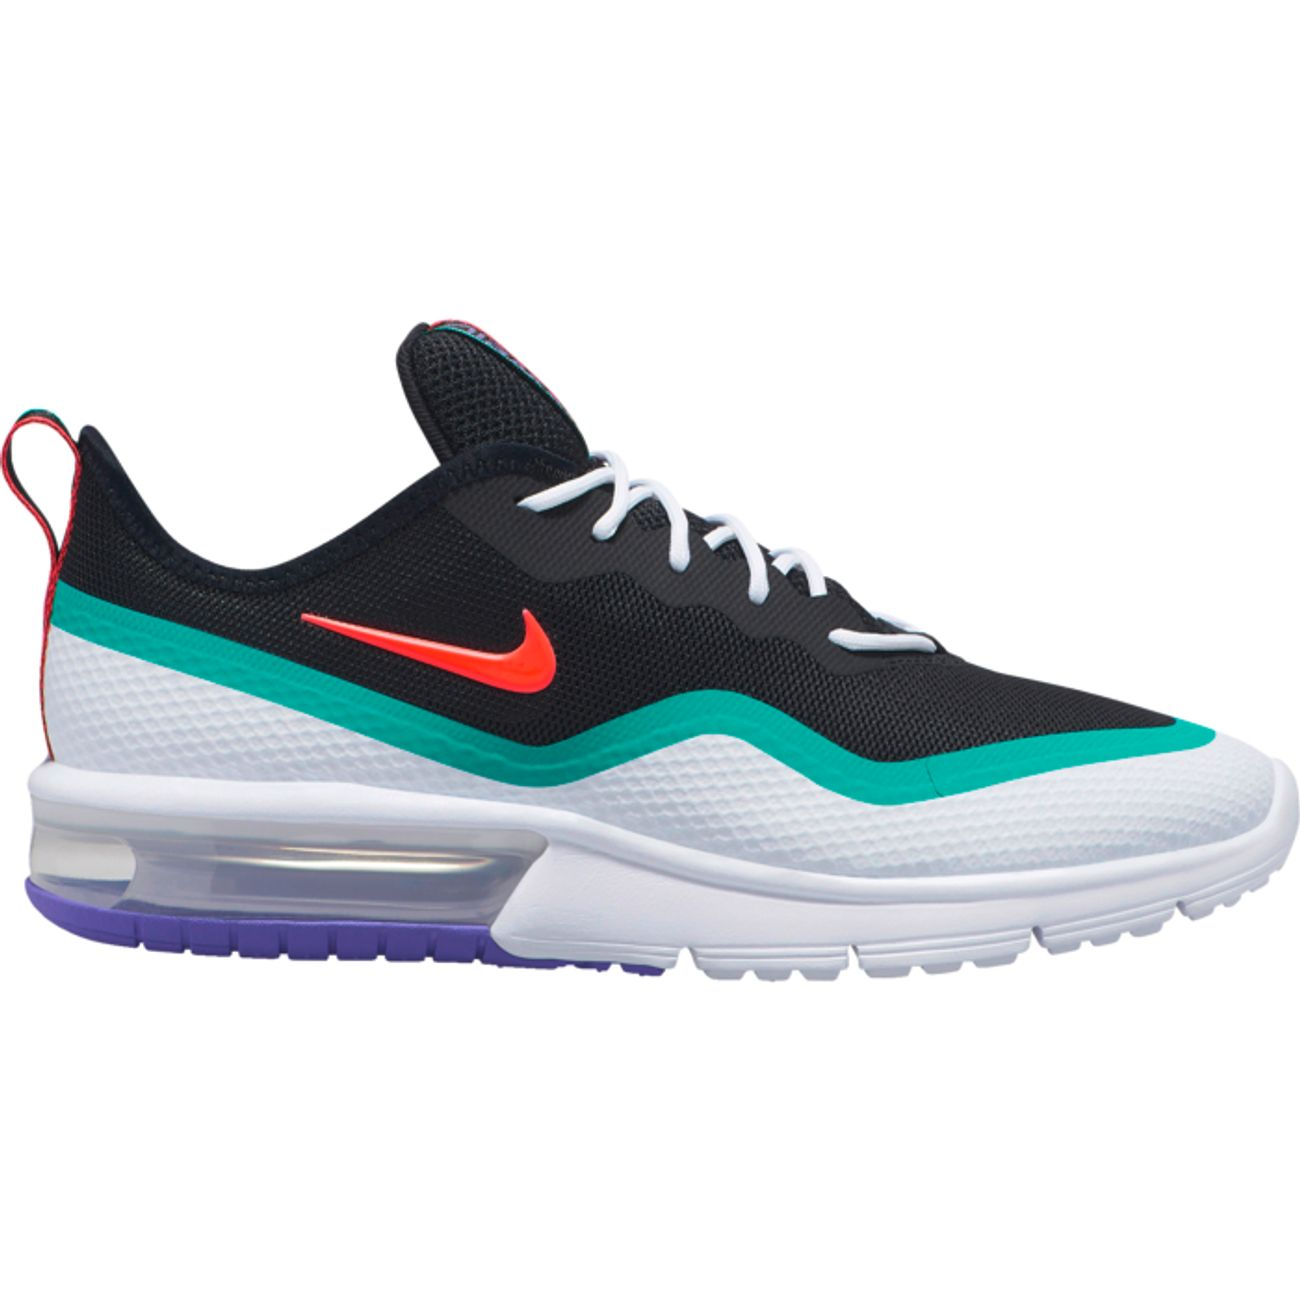 CHAUSSURES BASSES Loisirs homme NIKE AIR MAX SEQUENT 4.5